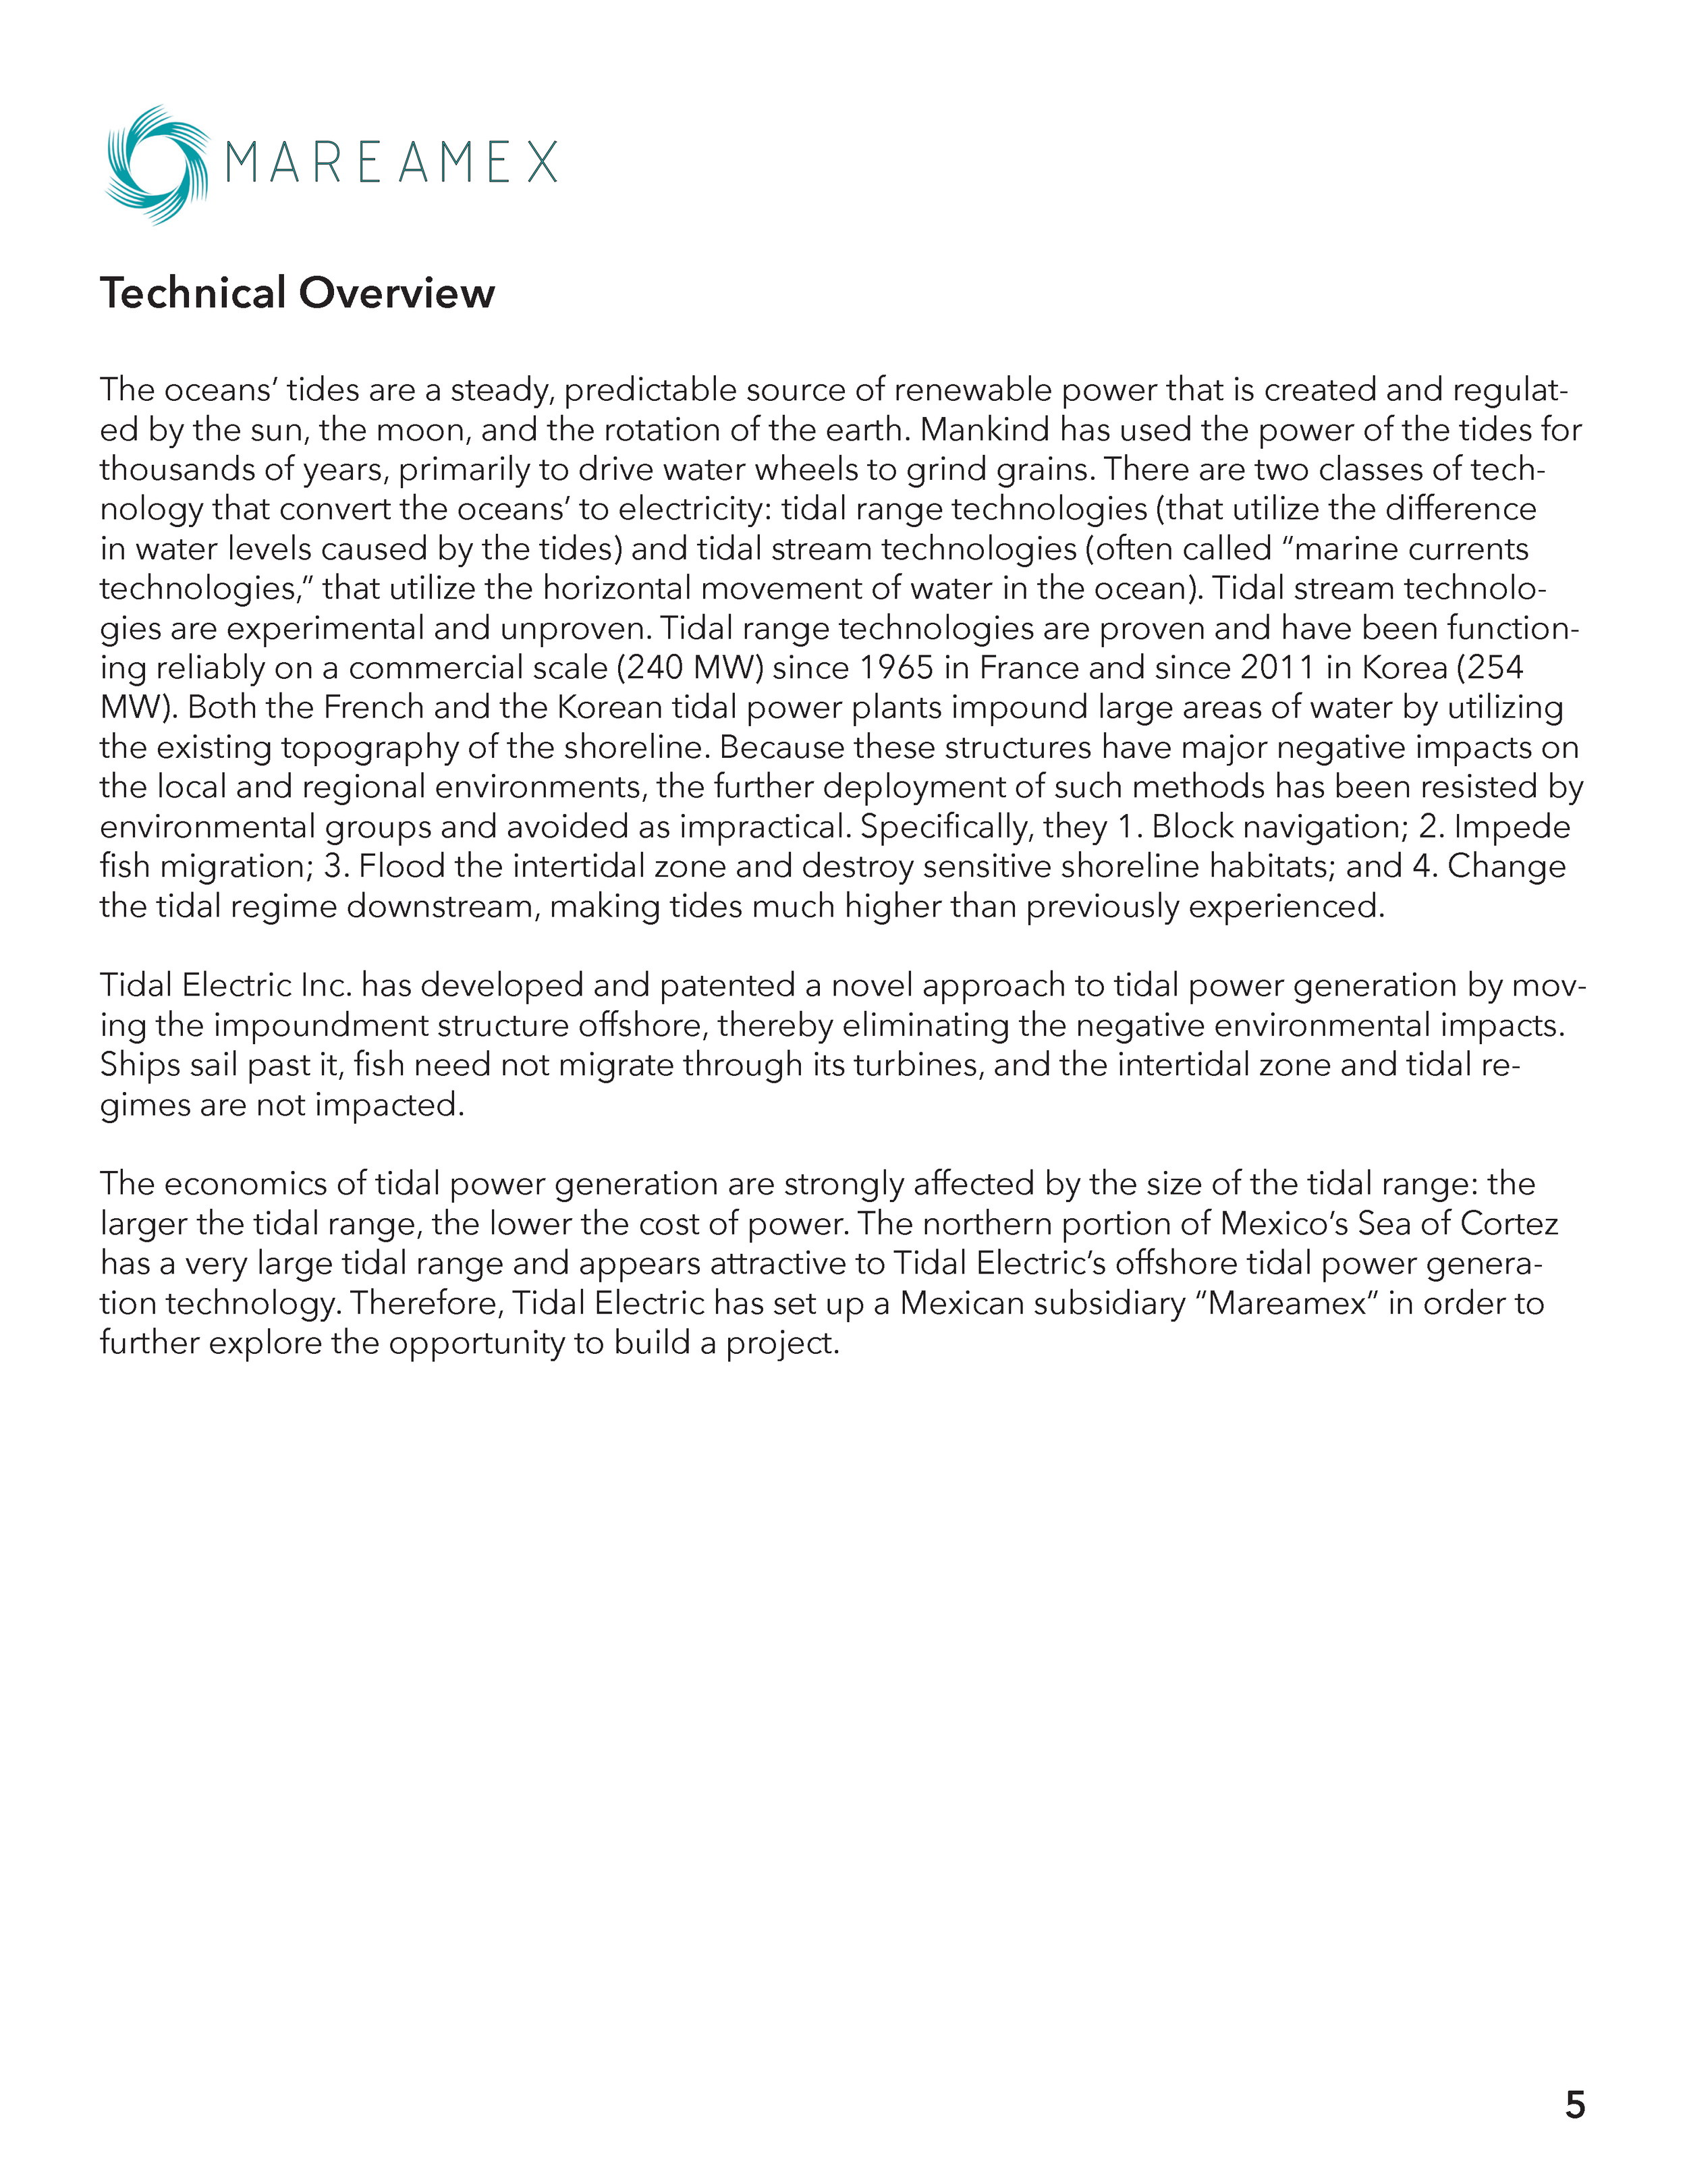 Tidal Electric_Mareamex_Overview_Page_6.png